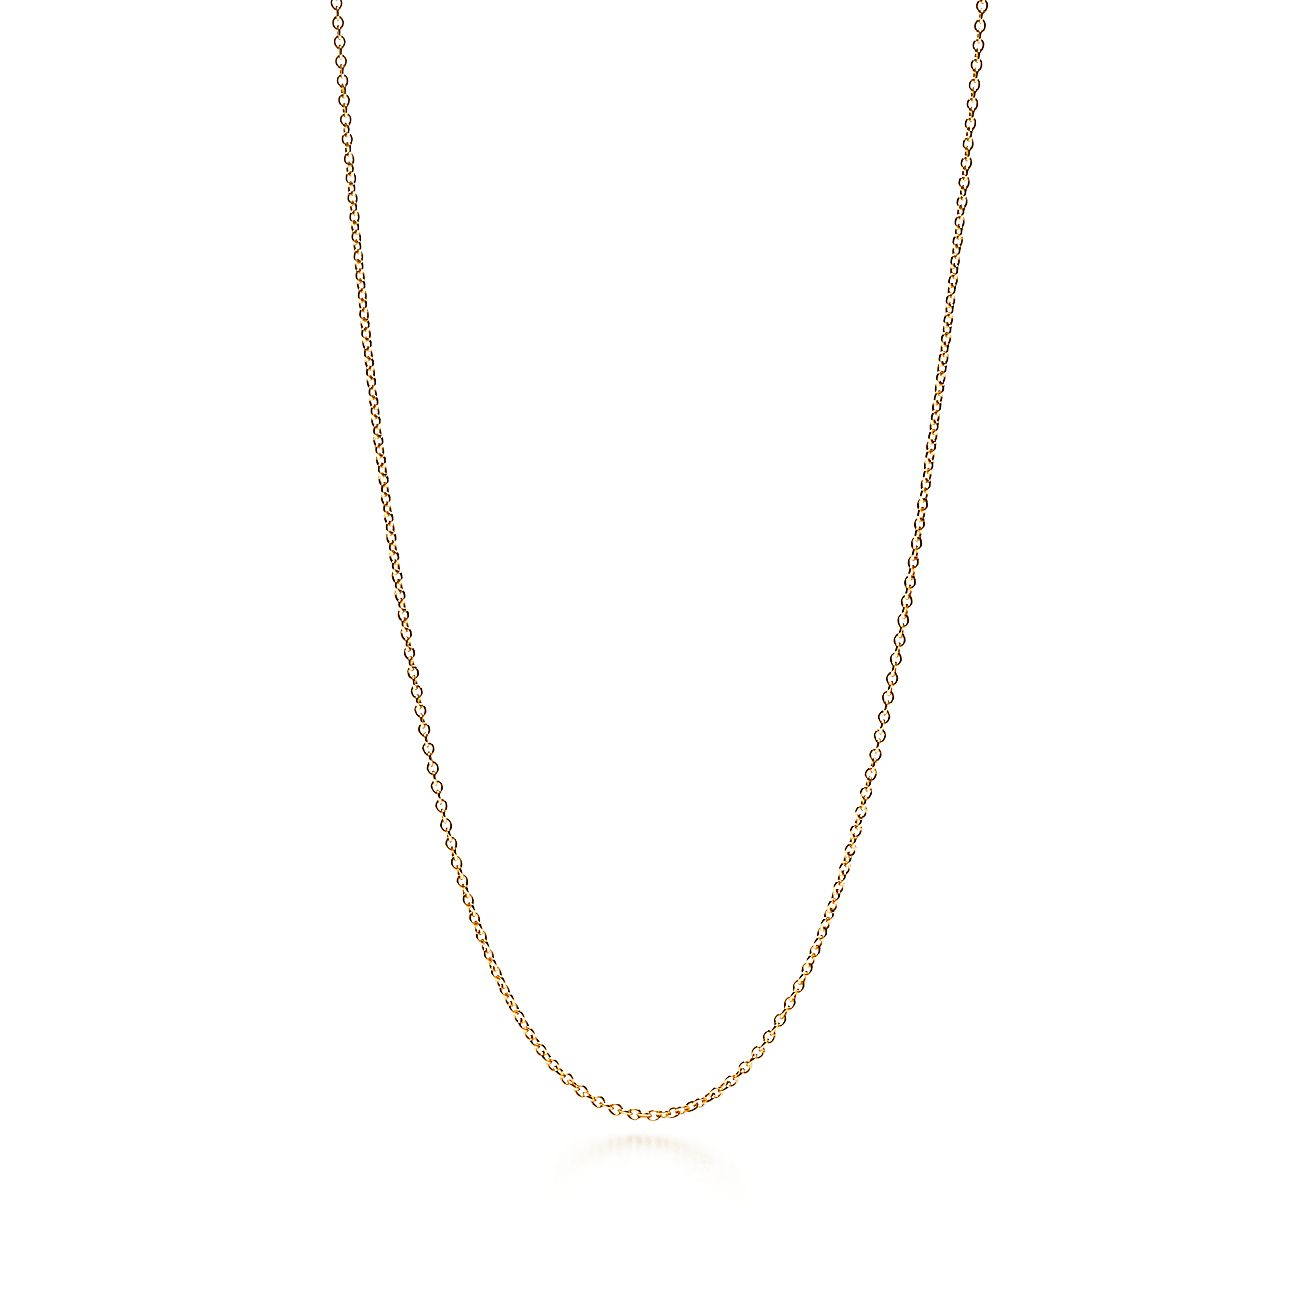 ebay pvd mm new men woman bonded herringbone itm sizes chain gold s necklace